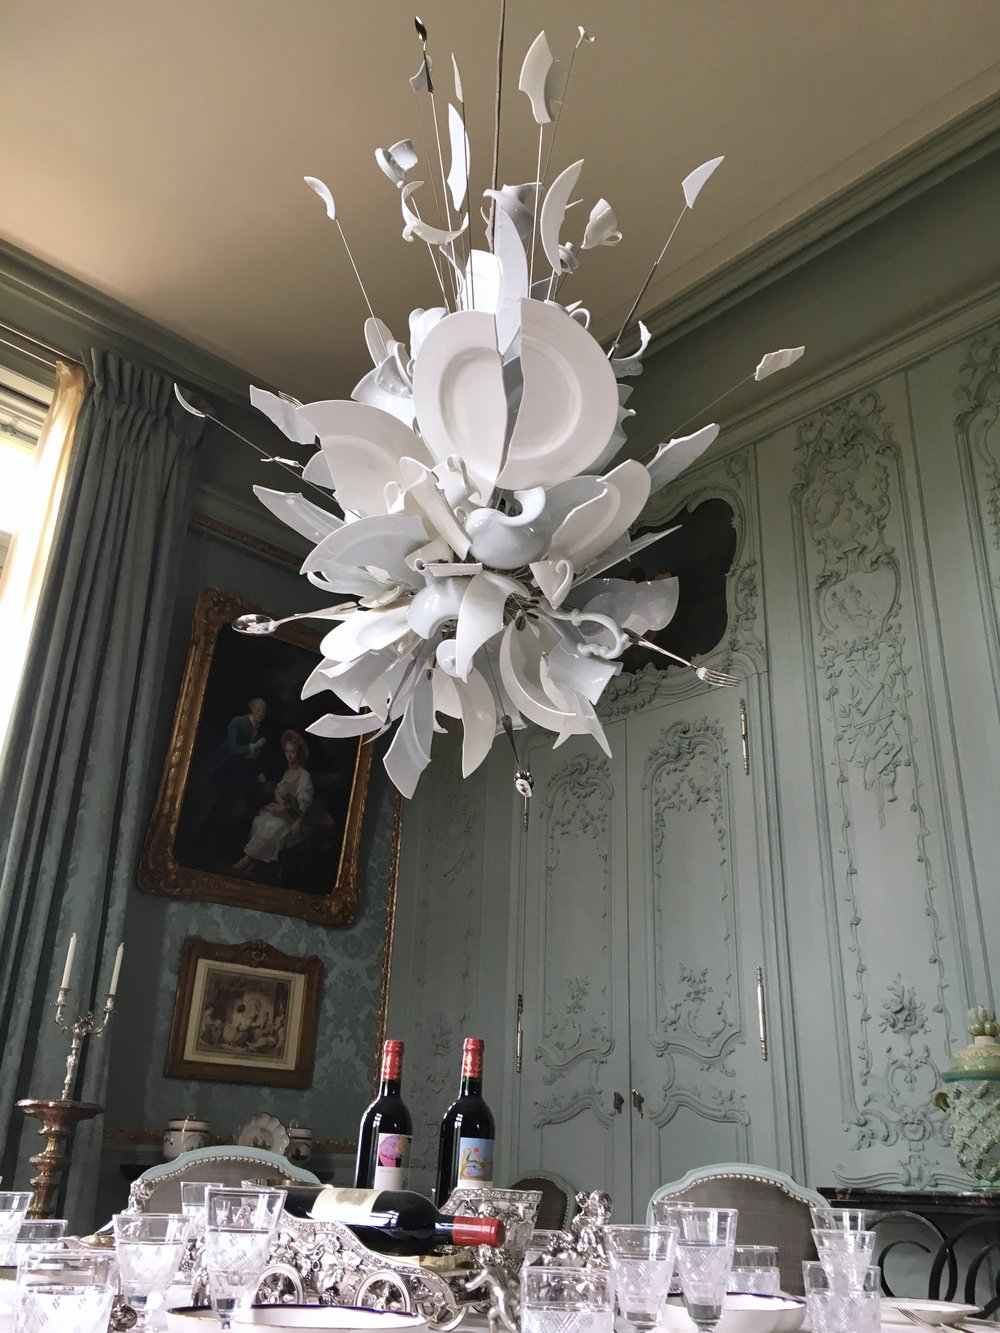 UK Waddesdon Manor broken glass chandelier National Trust French Chateau Rothschild Buckinghamshire garden chateau Eileen Hsieh Follow That Bug .jpg